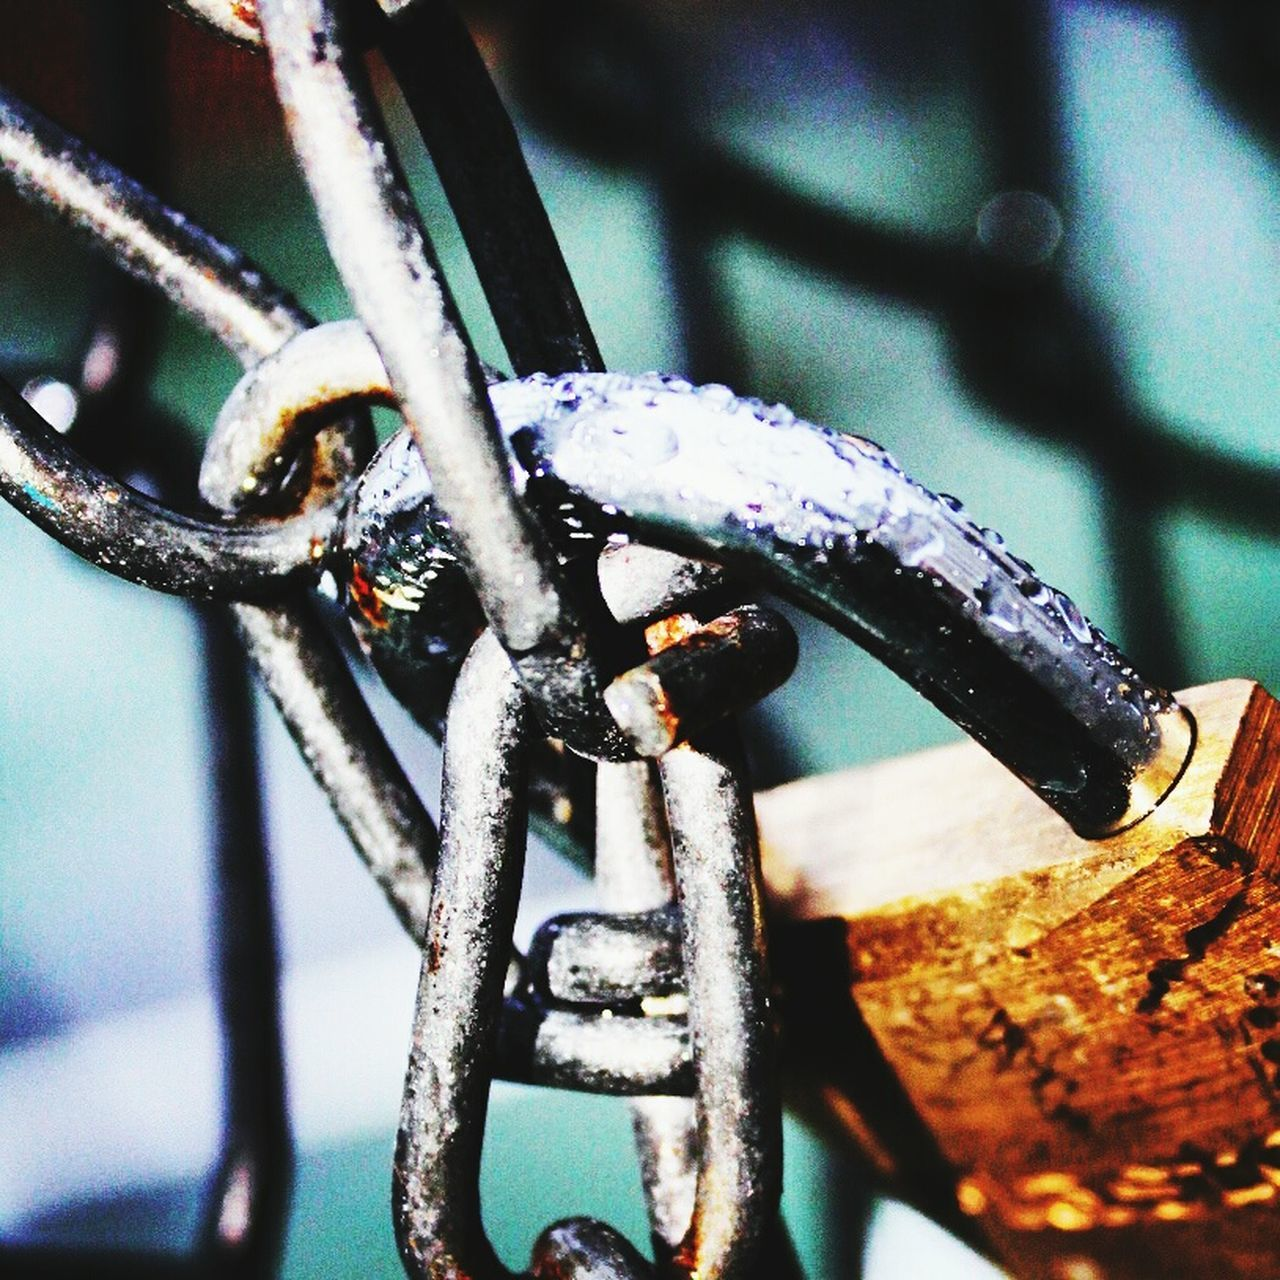 metal, close-up, no people, focus on foreground, outdoors, day, cold temperature, rusty, winter, snow